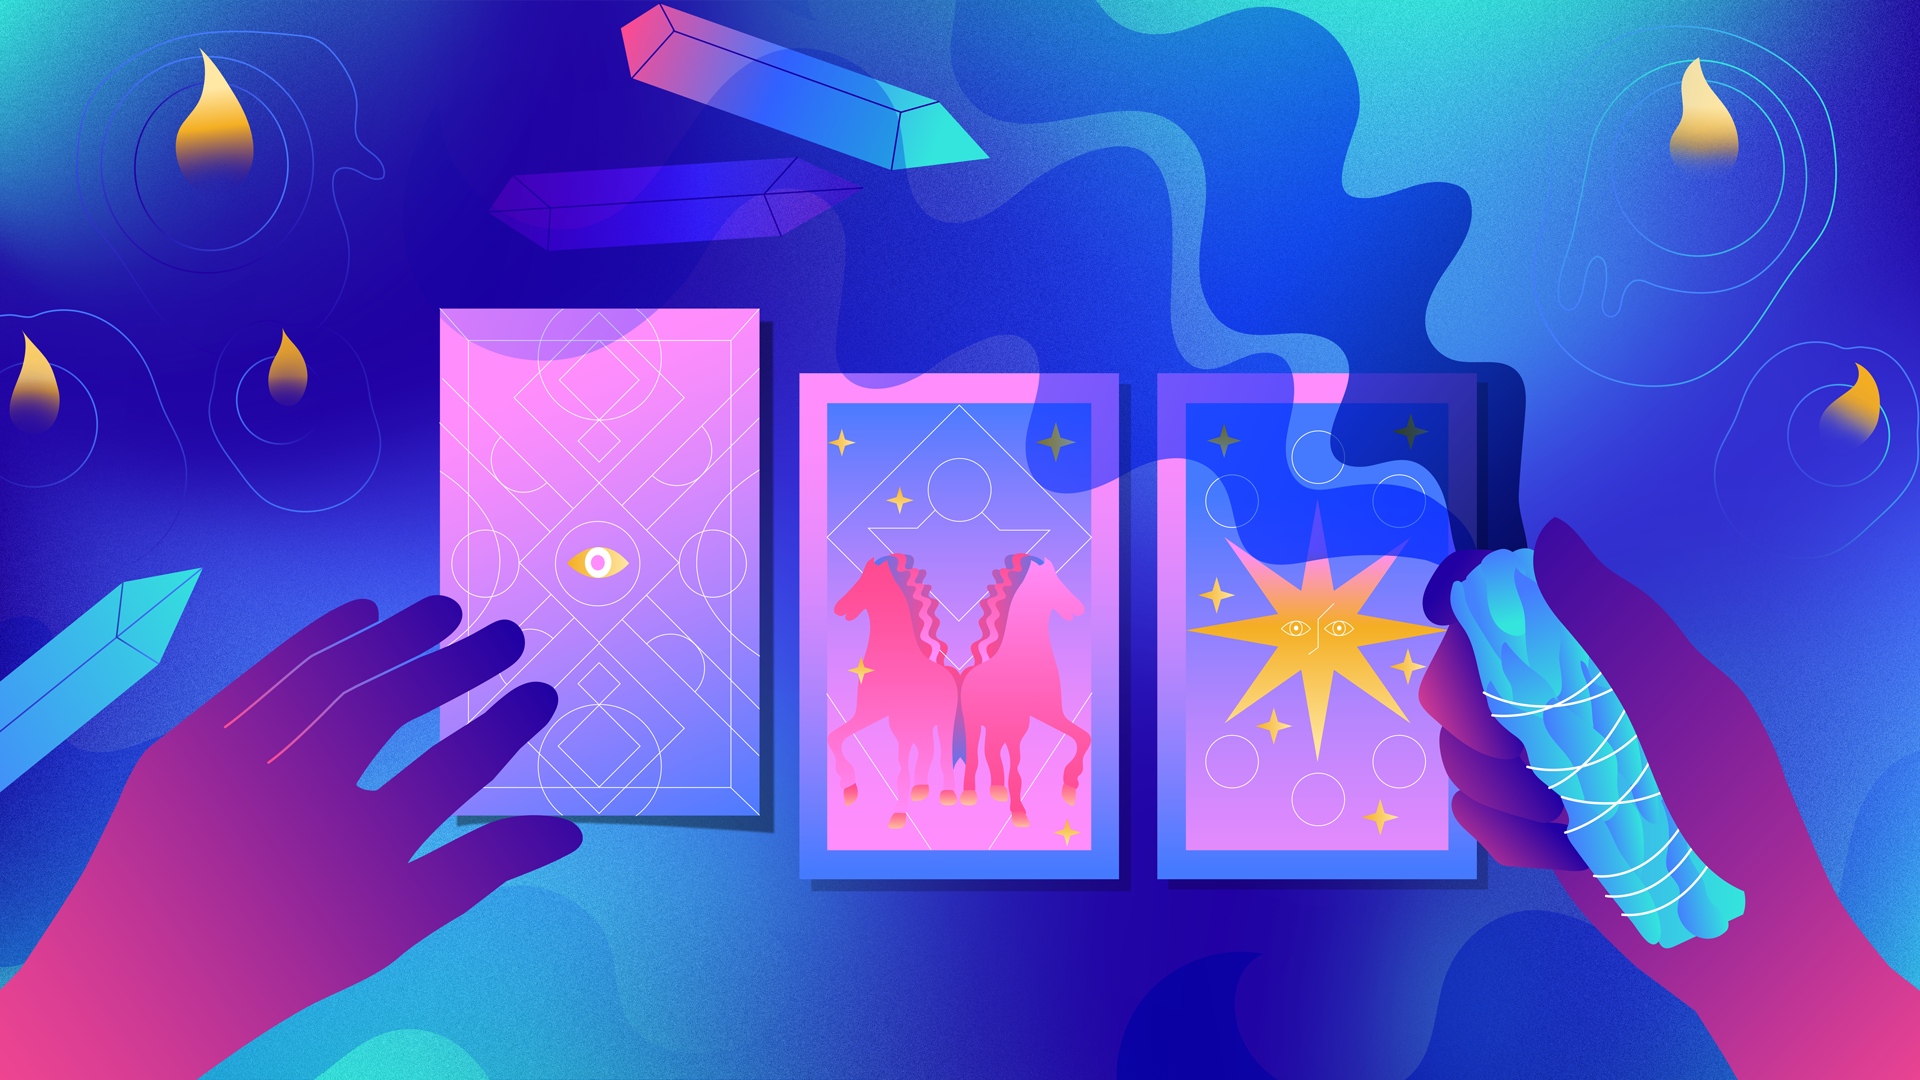 The Beginner's Guide to Reading Tarot Cards